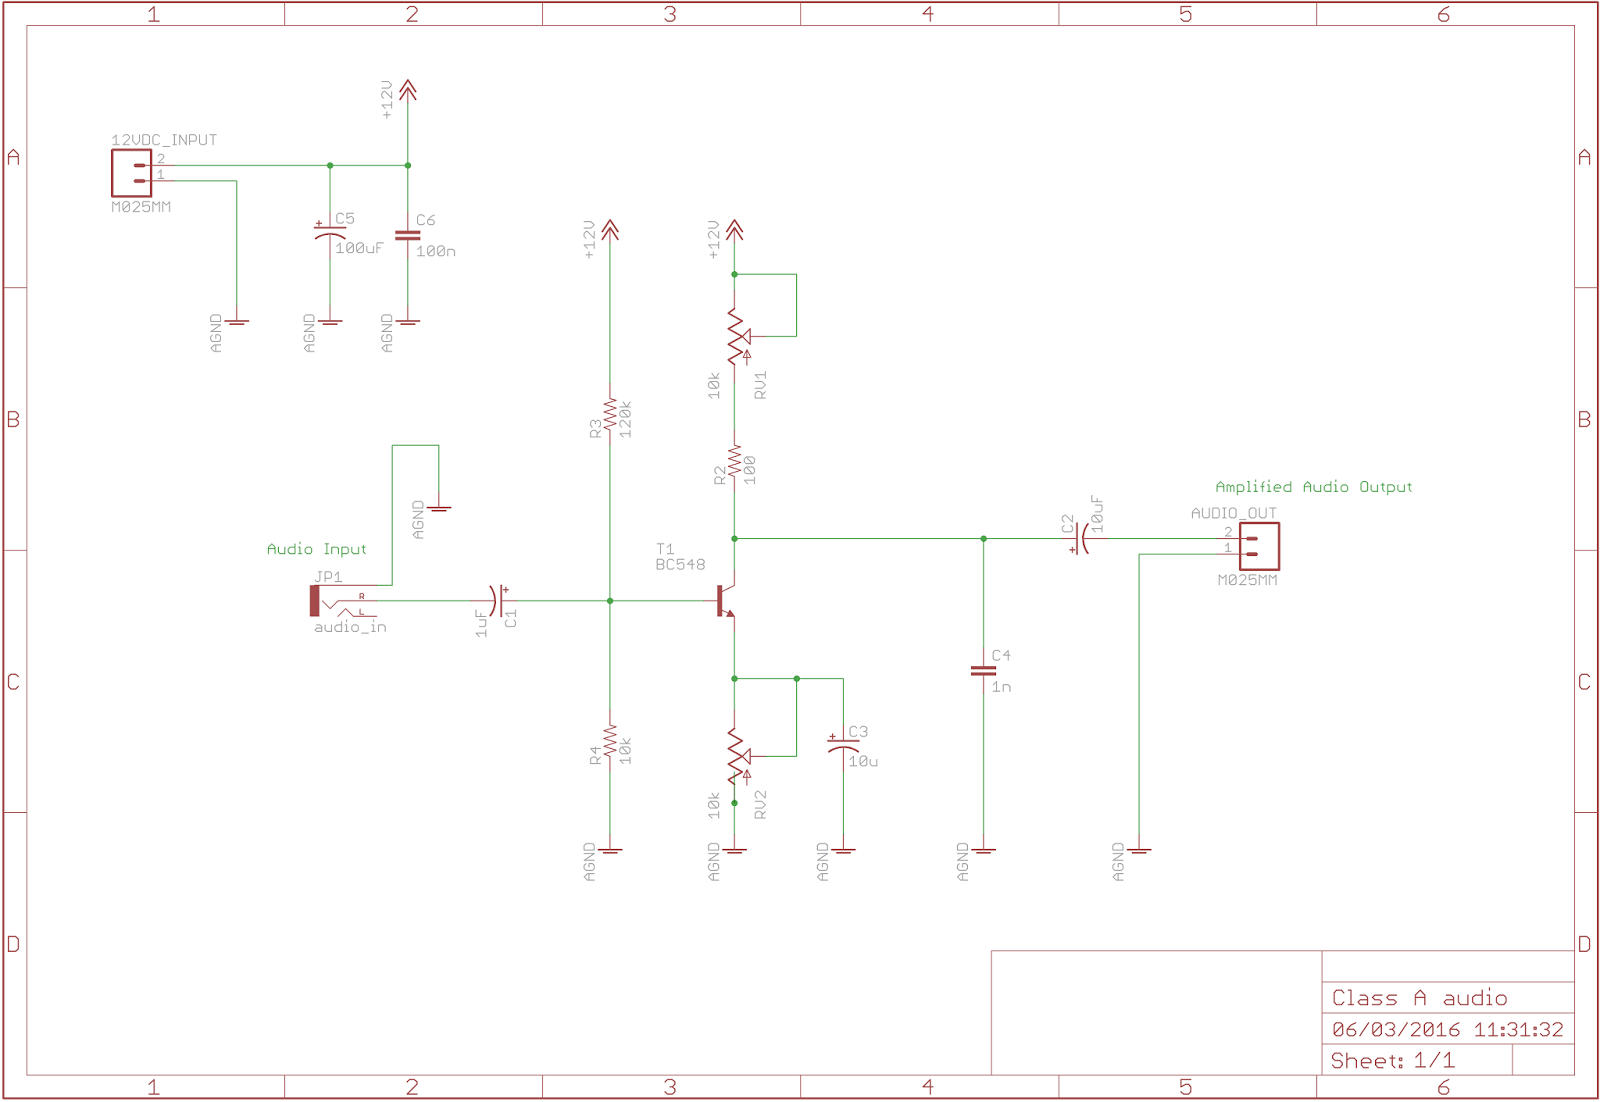 Bipolar Transistors Hackspace Manchester Transistor Amplifier Circuit Design Schematic Diagram In Designing The I Referred To This Websitewhich Is Rather Useful For Kind Of Thing